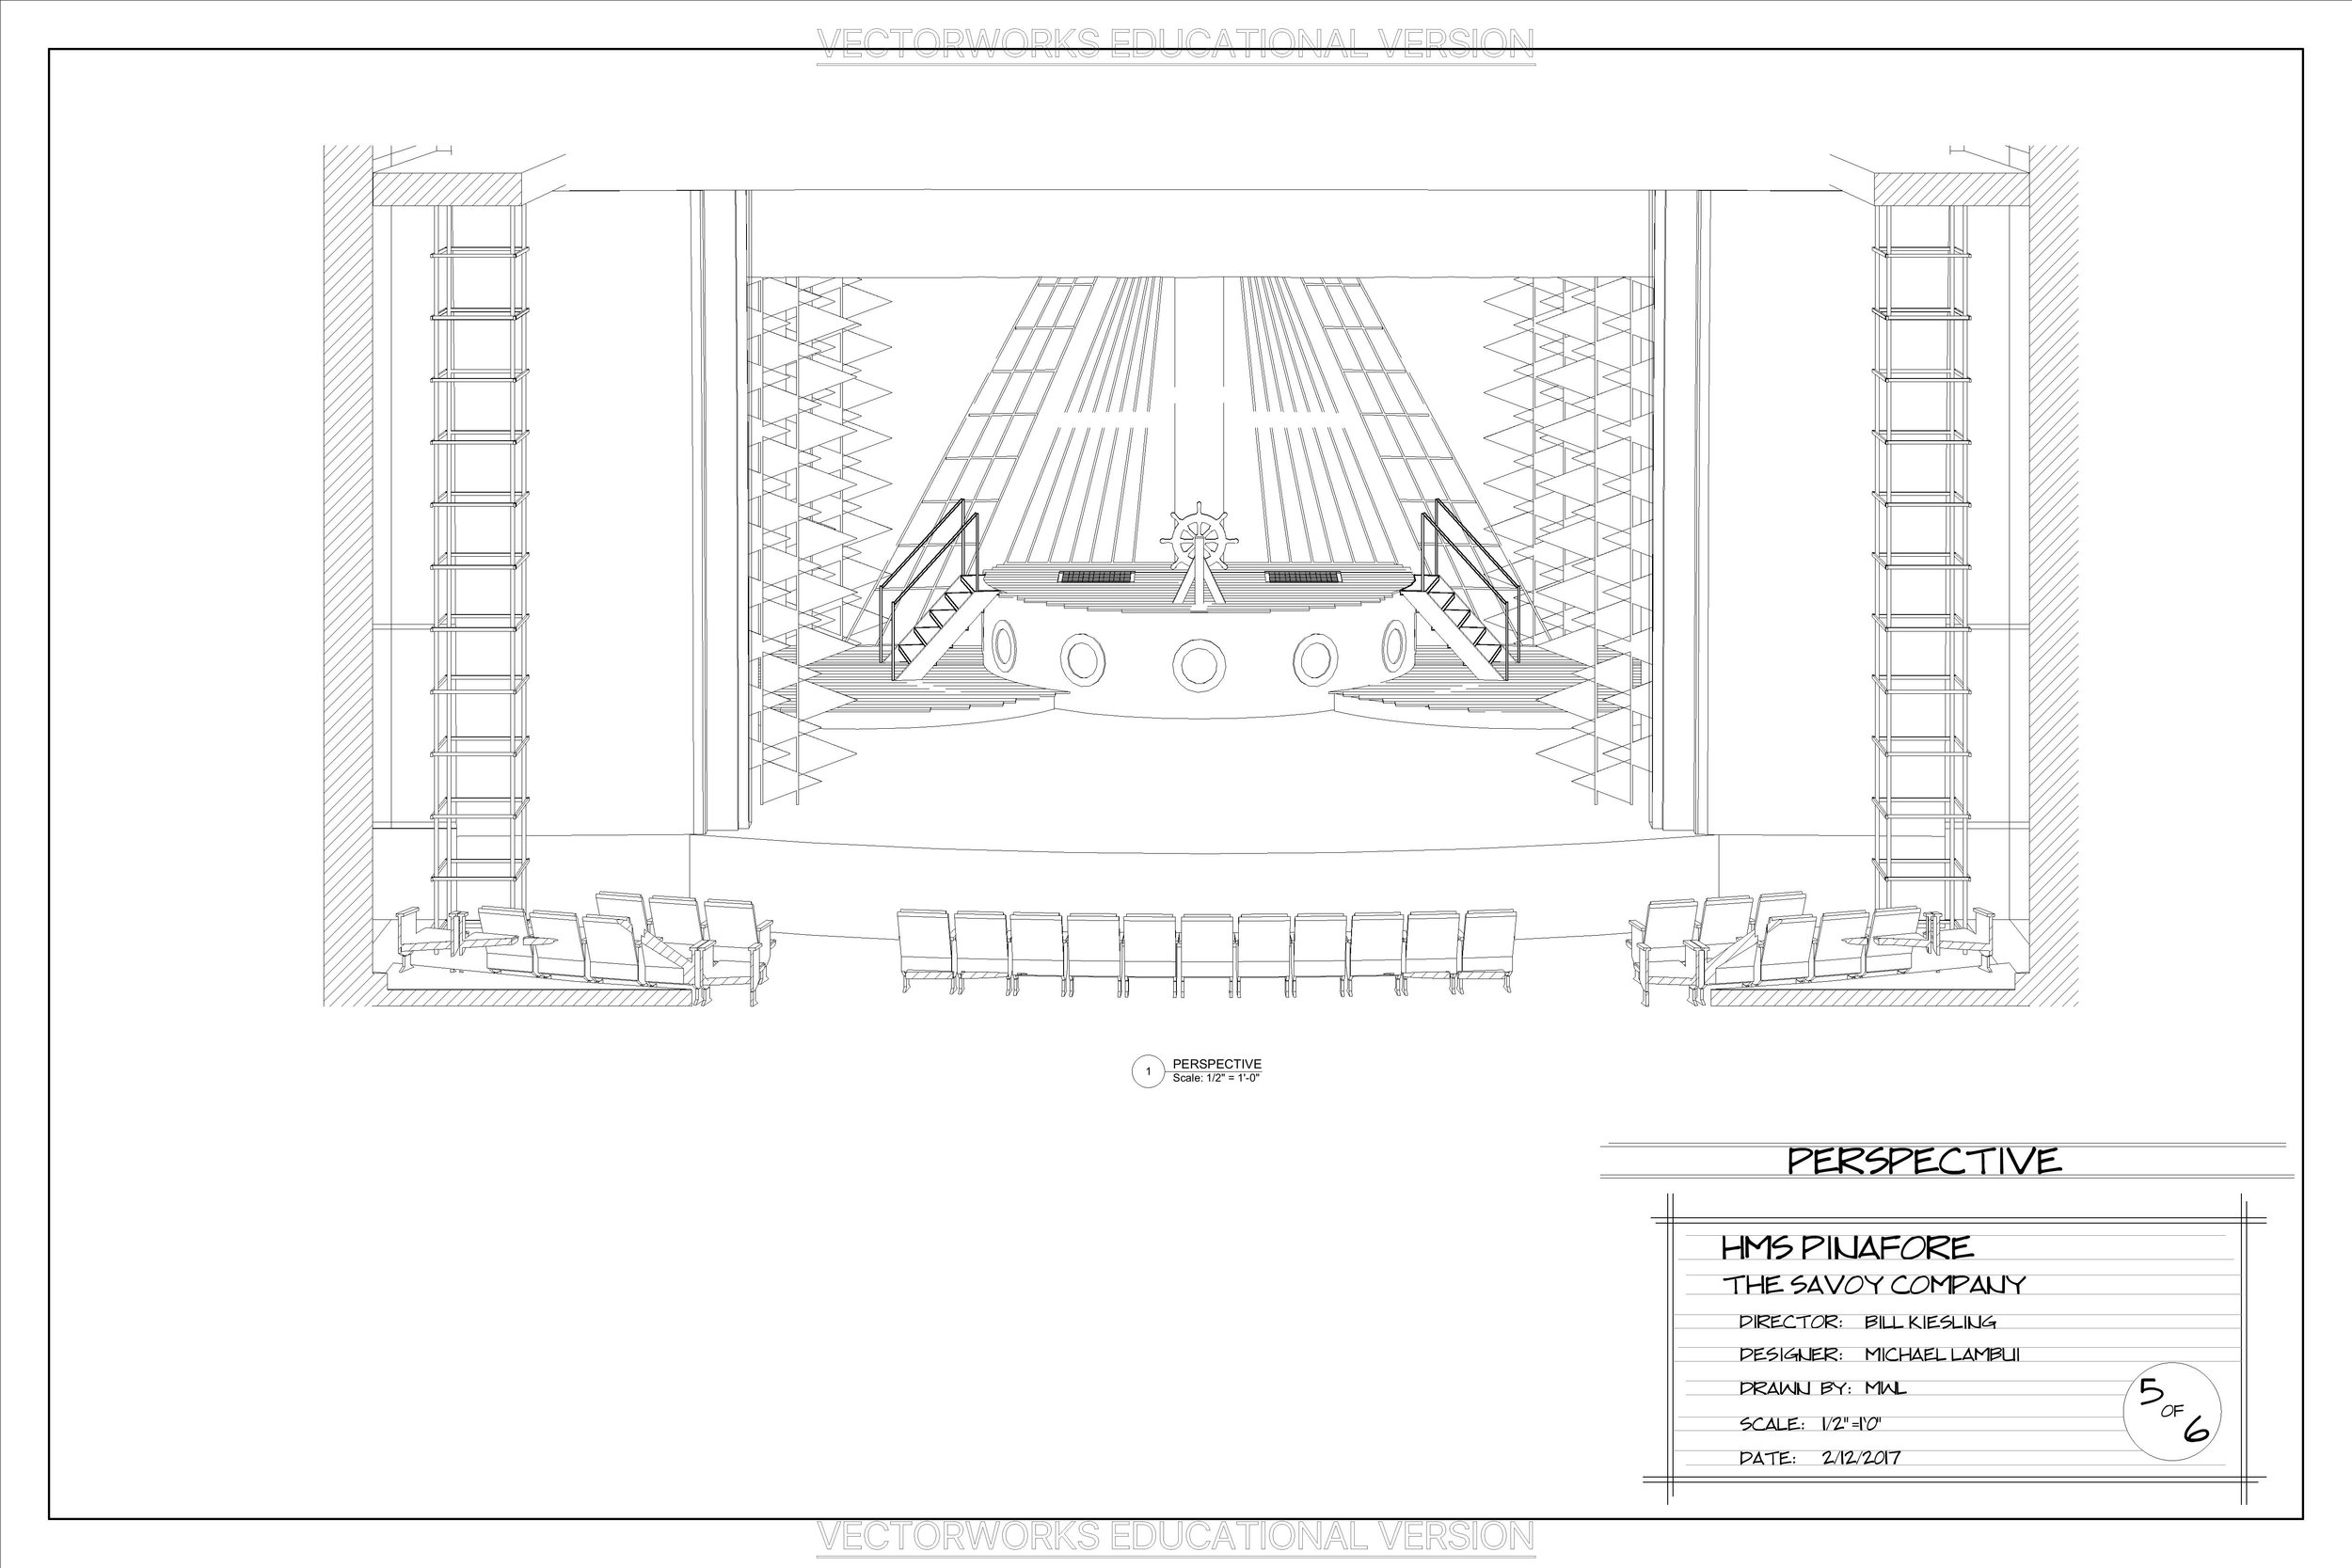 HMS Pinafore Plans_v1 36X24-page-005.jpg